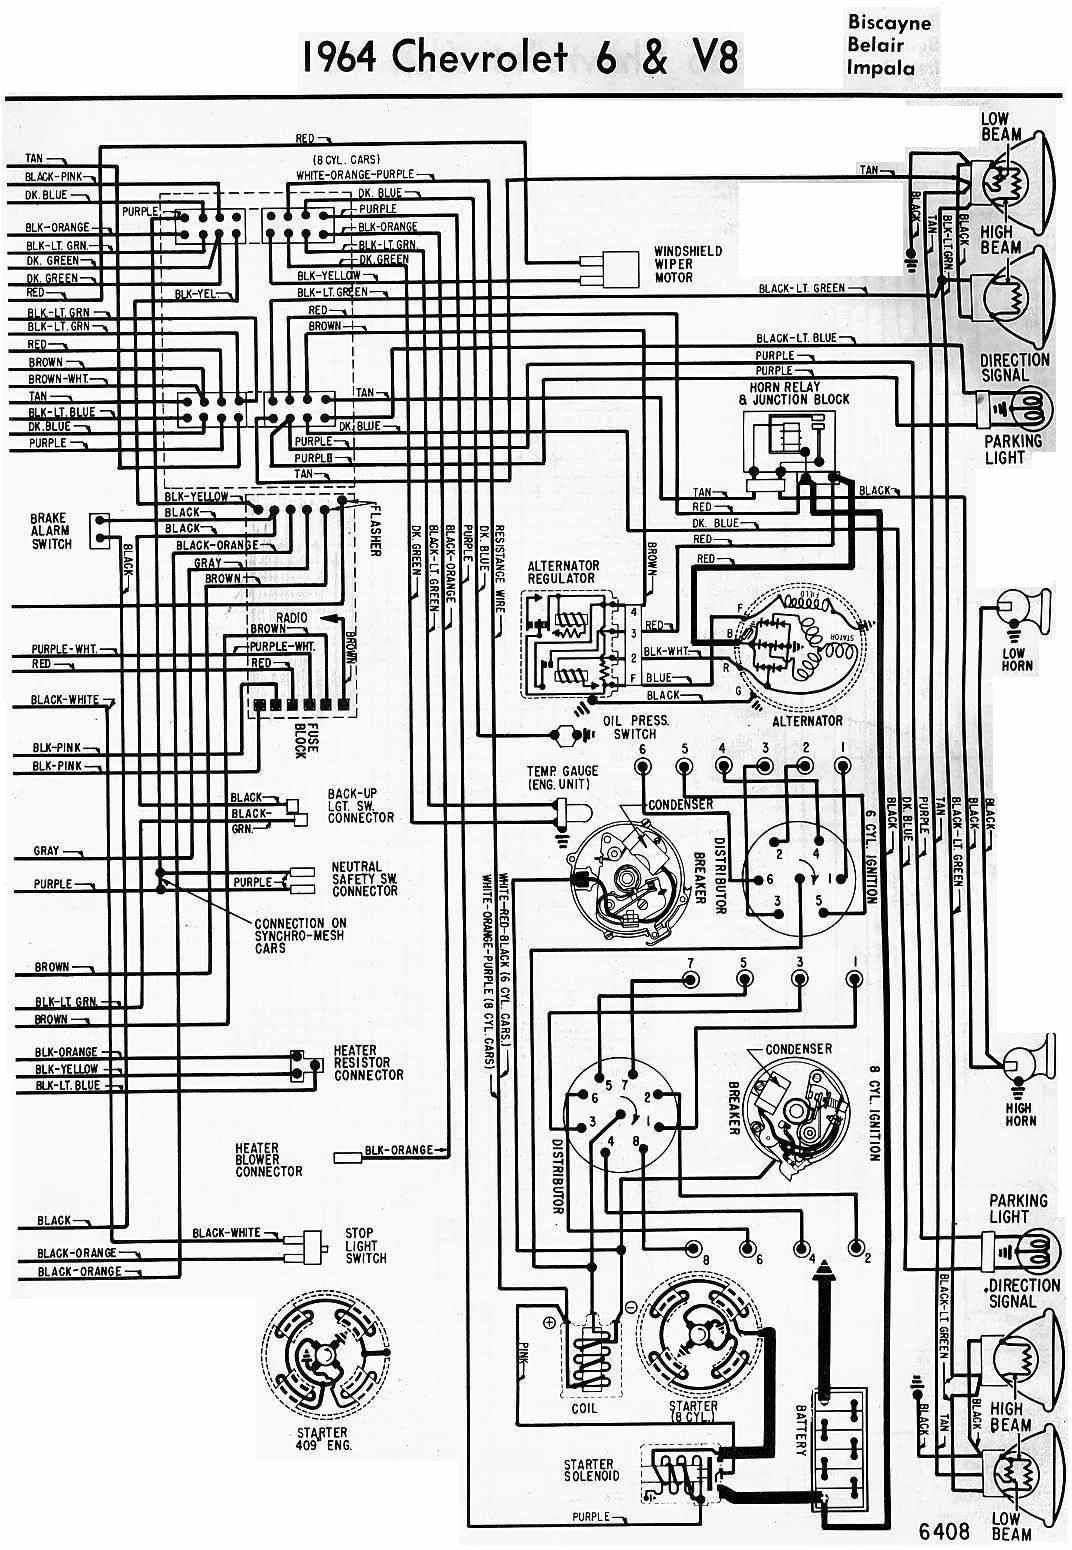 1964 dodge dart wiring diagram wiring diagram tutorial 1964 dodge dart wiring diagram [ 1072 x 1550 Pixel ]